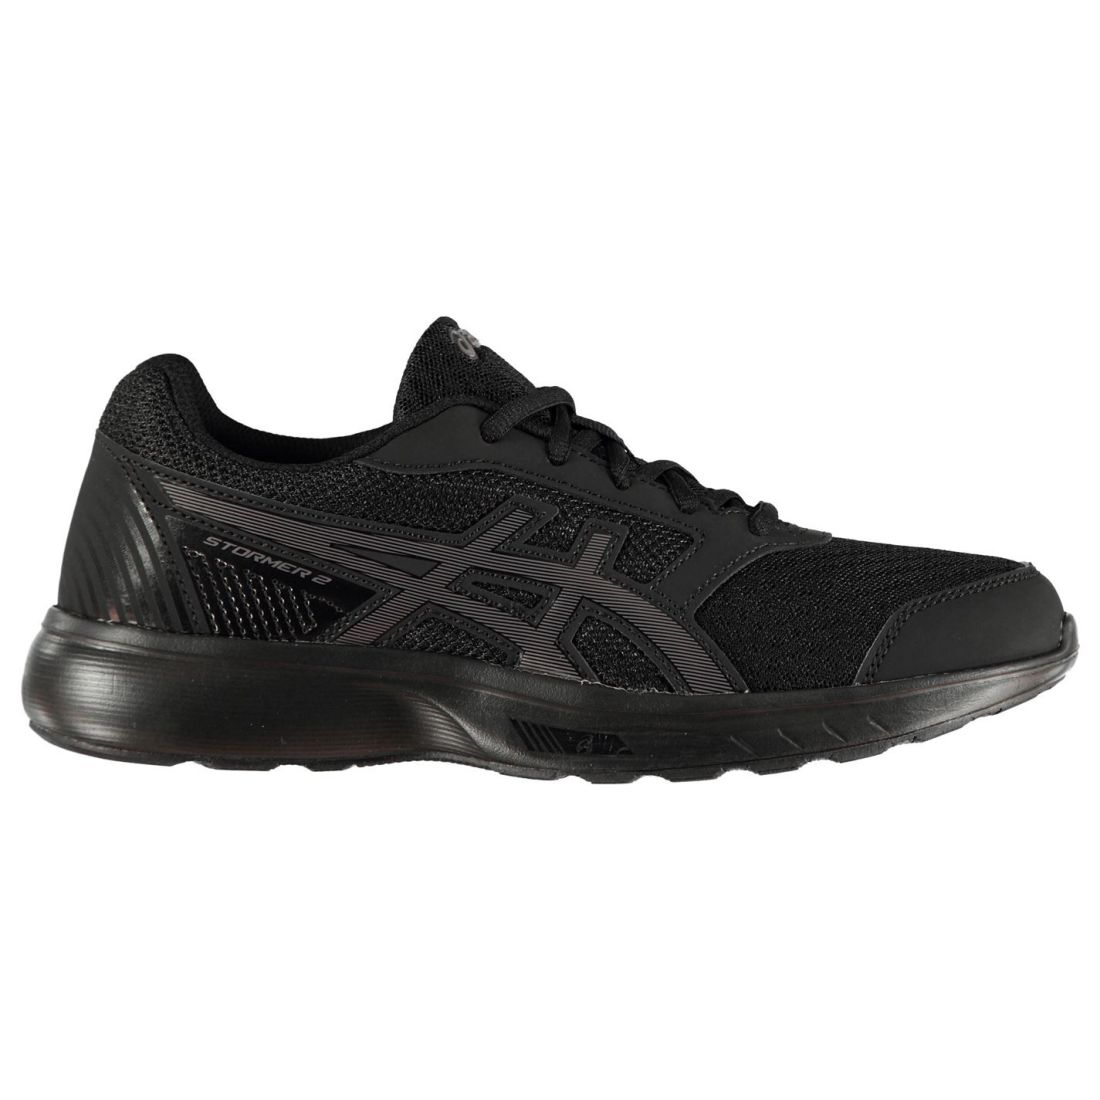 Asics Stormer 2  Sneakers Ladies Runners Laces Fastened Padded Ankle Collar  first time reply